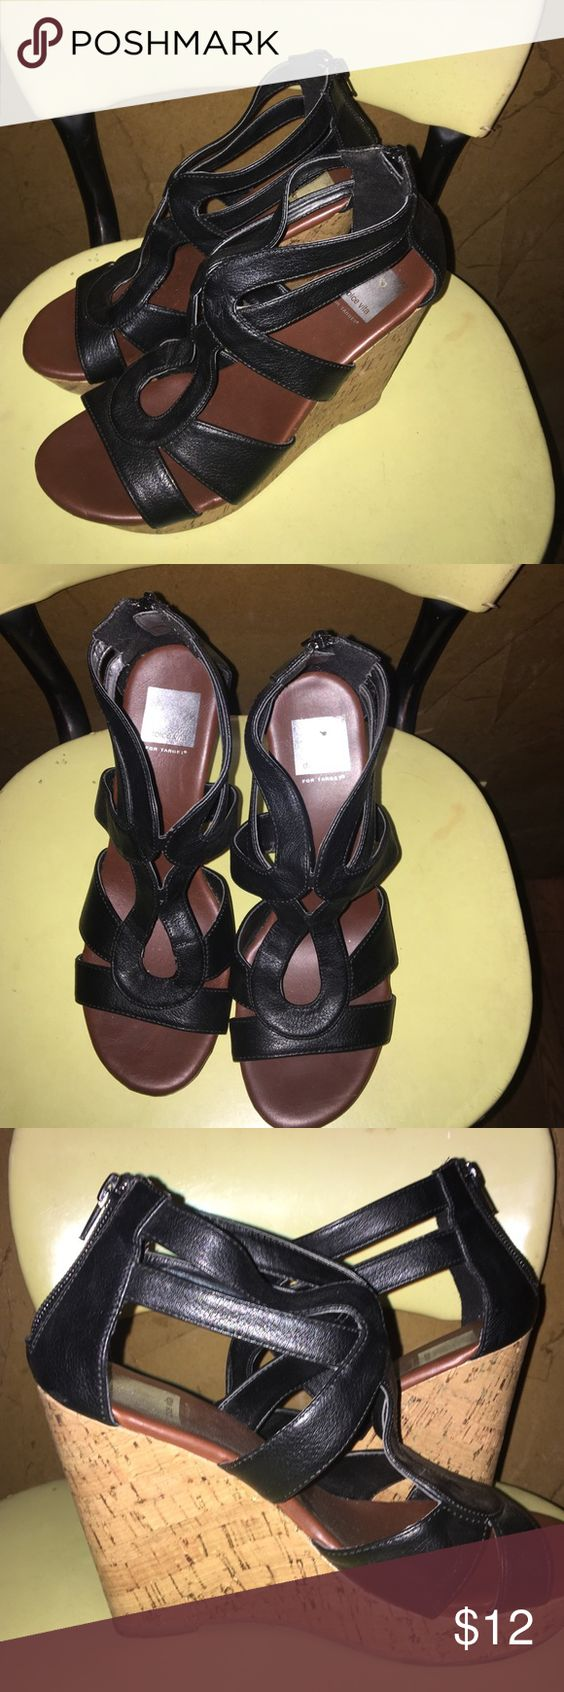 Womens sandals that zip up the back - Dolce Vita For Target Wedge Black Sandals Women S Sz 7 Wedge Sandals Zip Up In